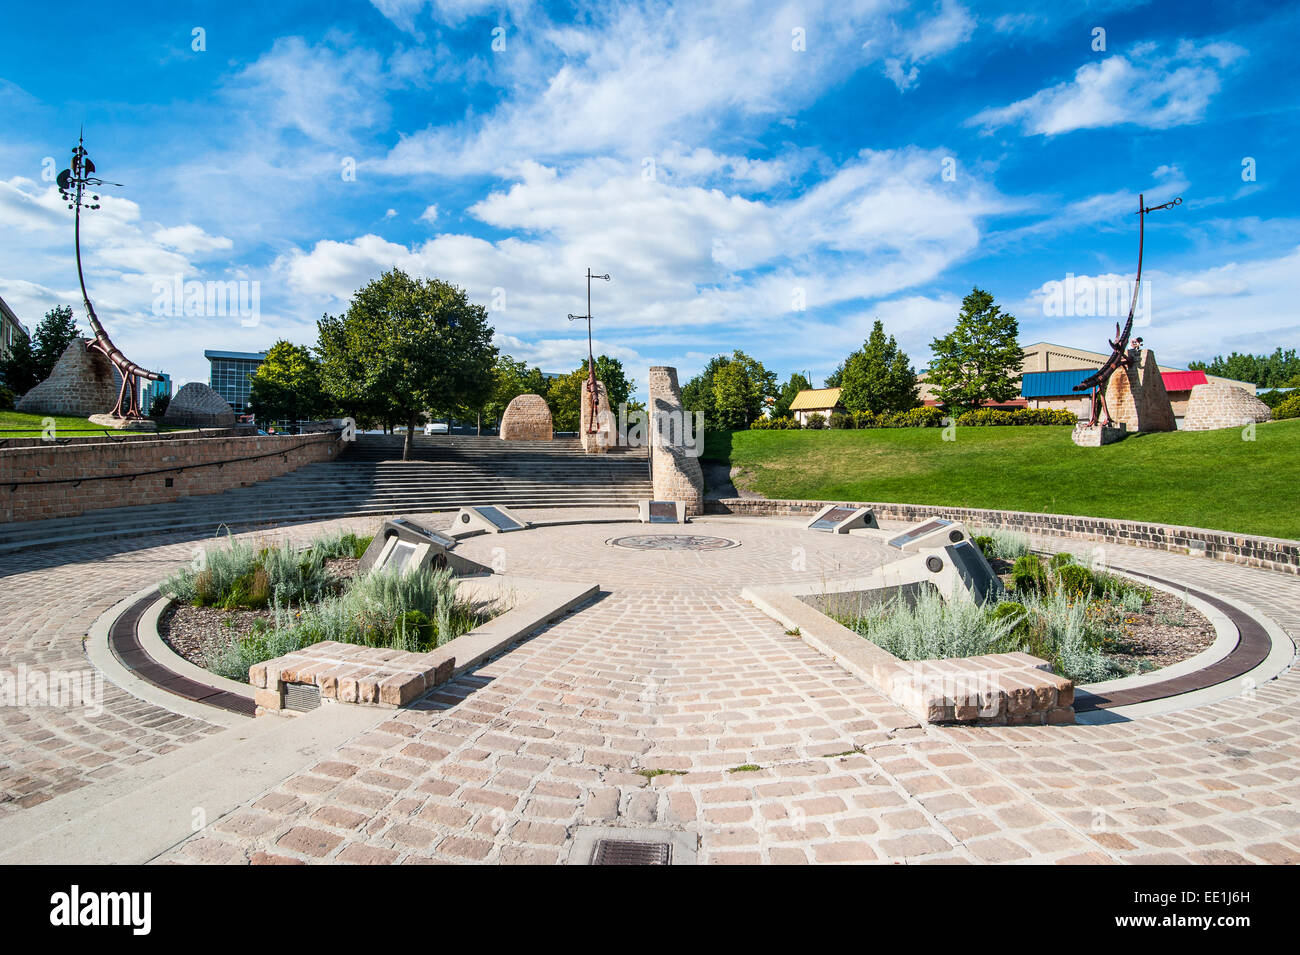 Forks astrological monument, Oodena Celebration Circle, Winnipeg, Manitoba, Canada, North America - Stock Image